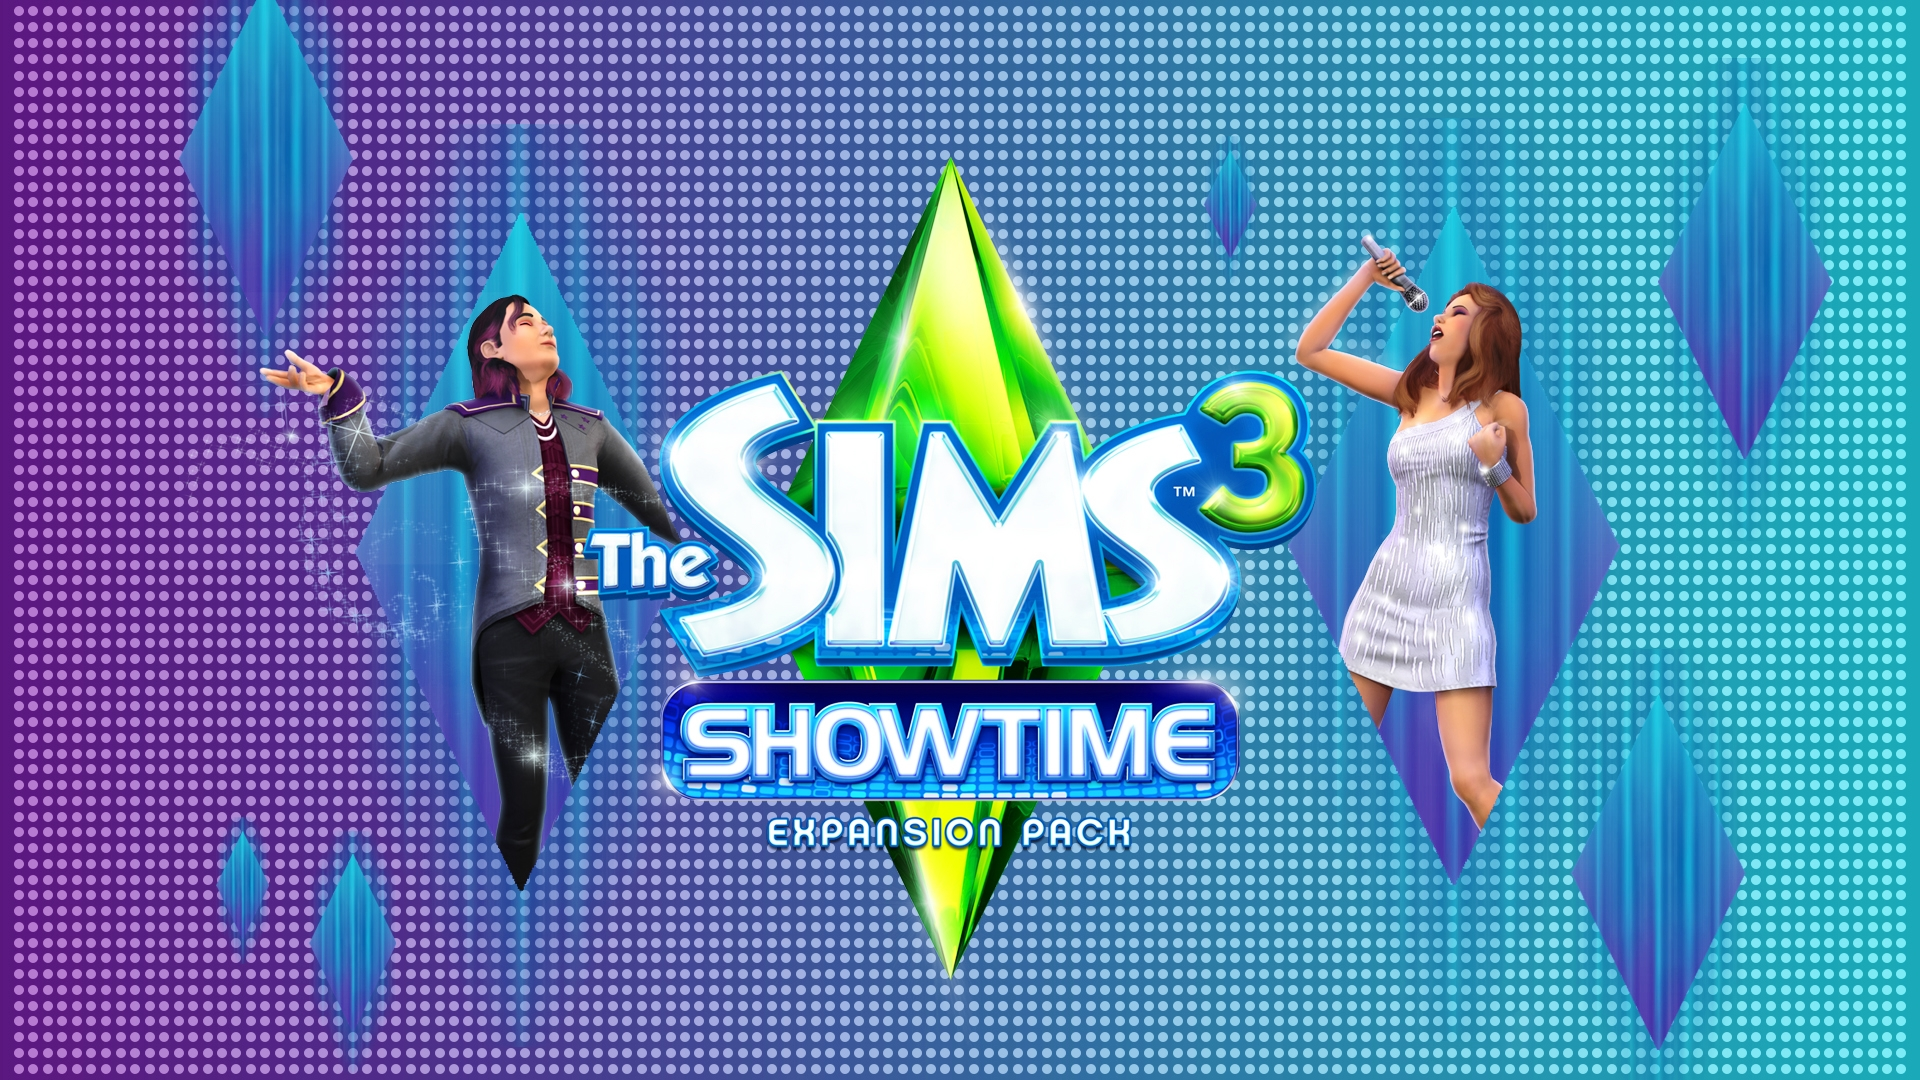 from the sims 3 showtime the ea games team in conjunction with the 1920x1080